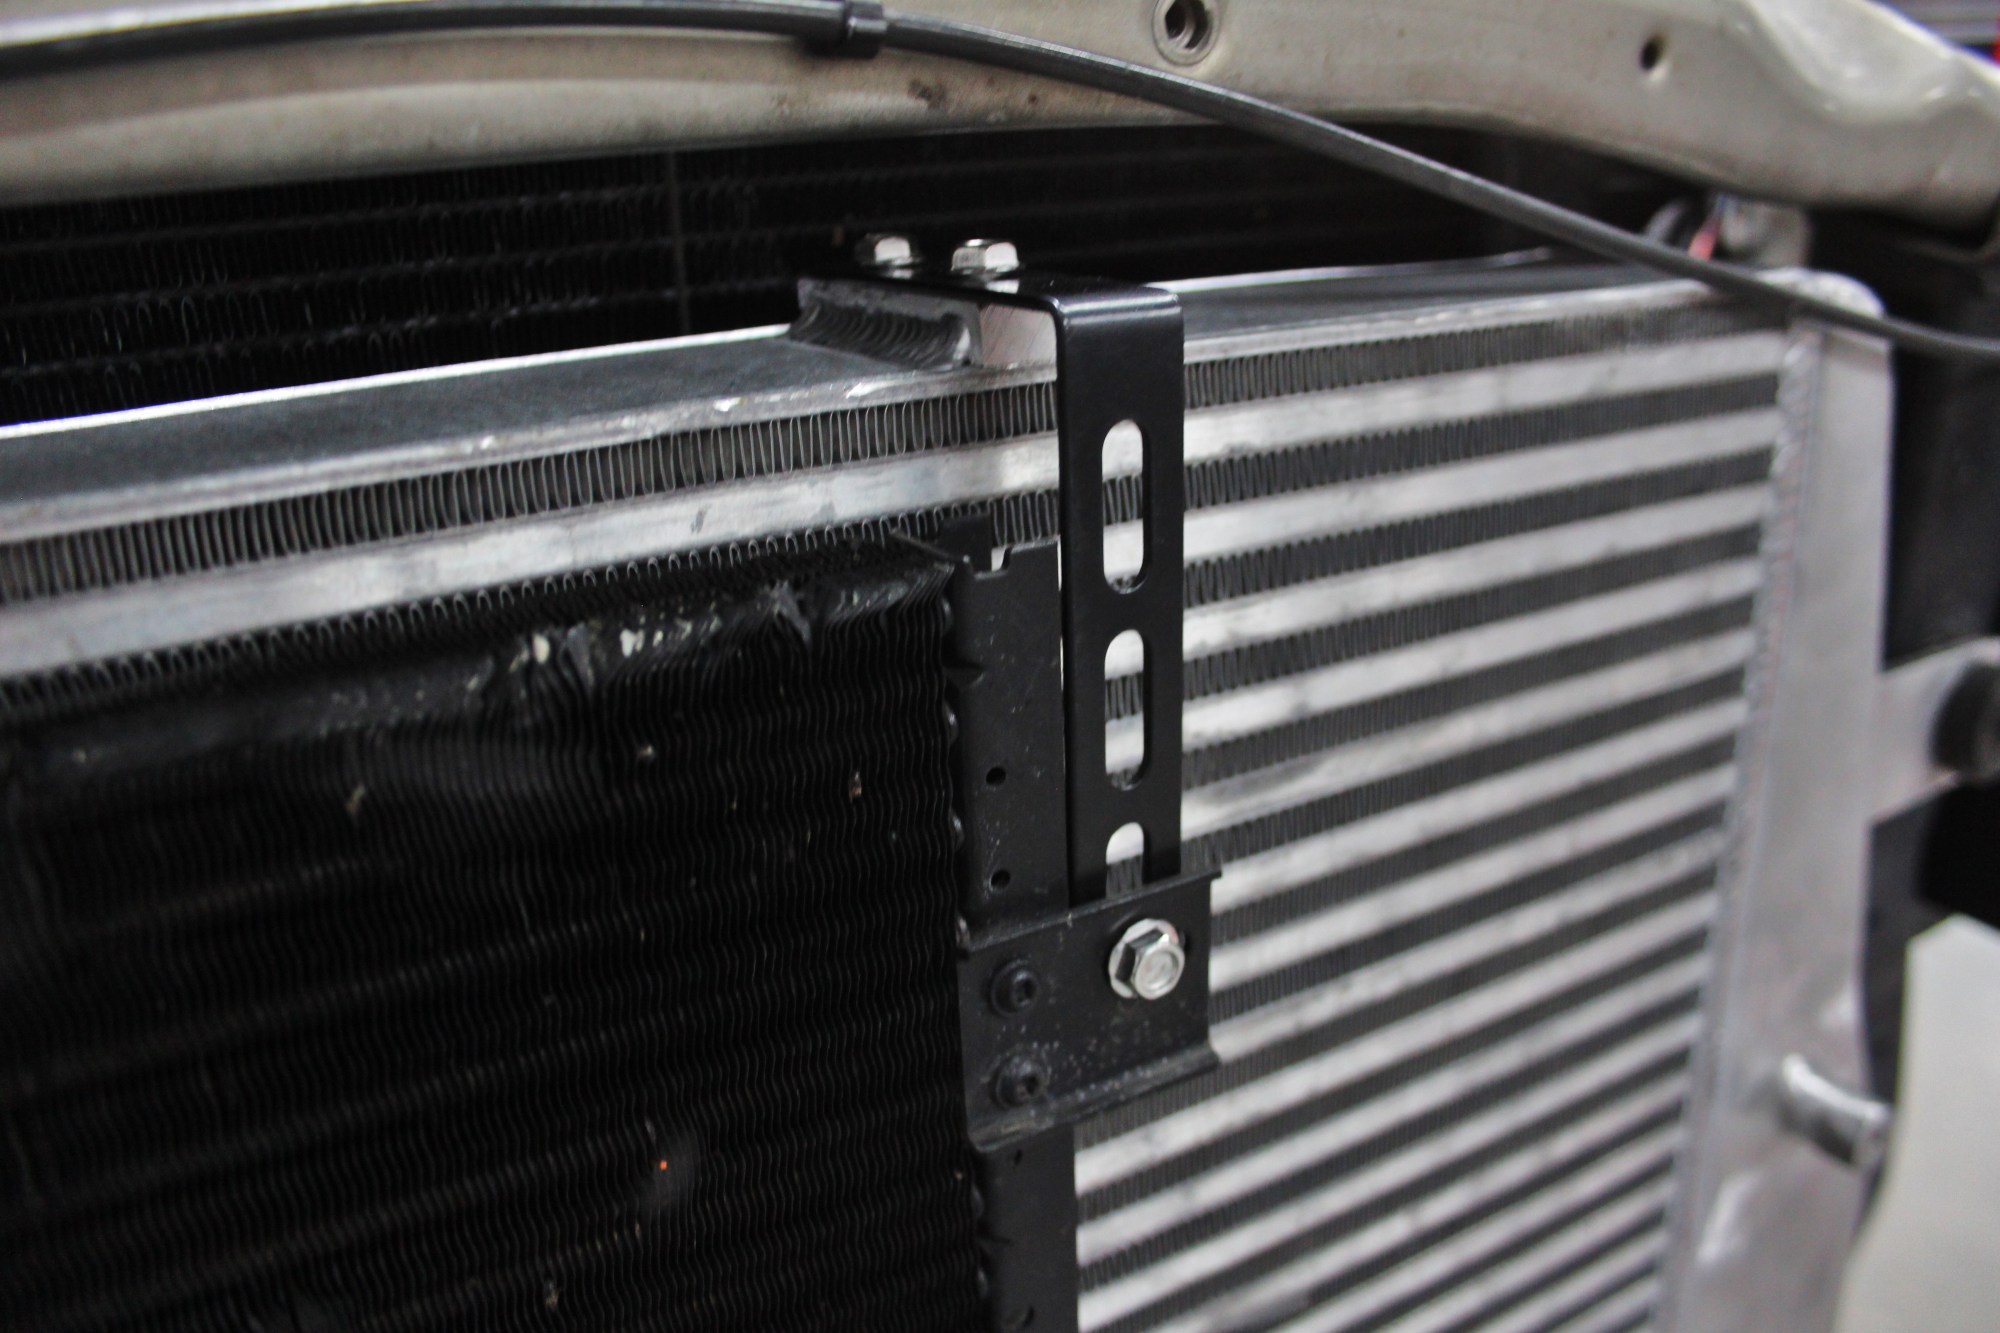 hight resolution of mishimoto intercooler ac condenser bracket may 4 2015 5184 3456